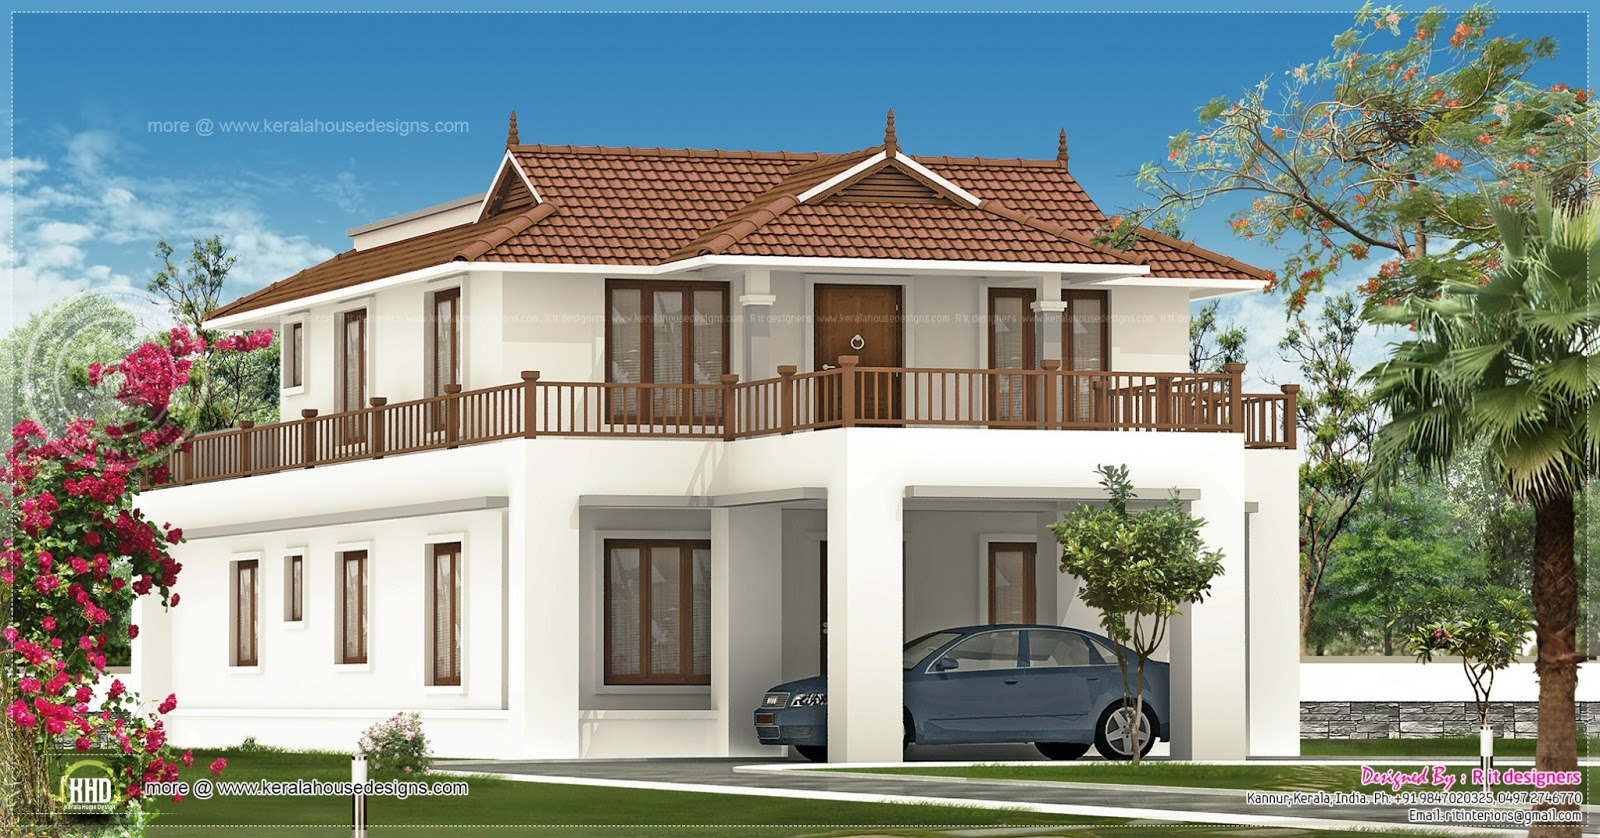 2820 square feet house exterior design home kerala plans for Home design exterior ideas in india